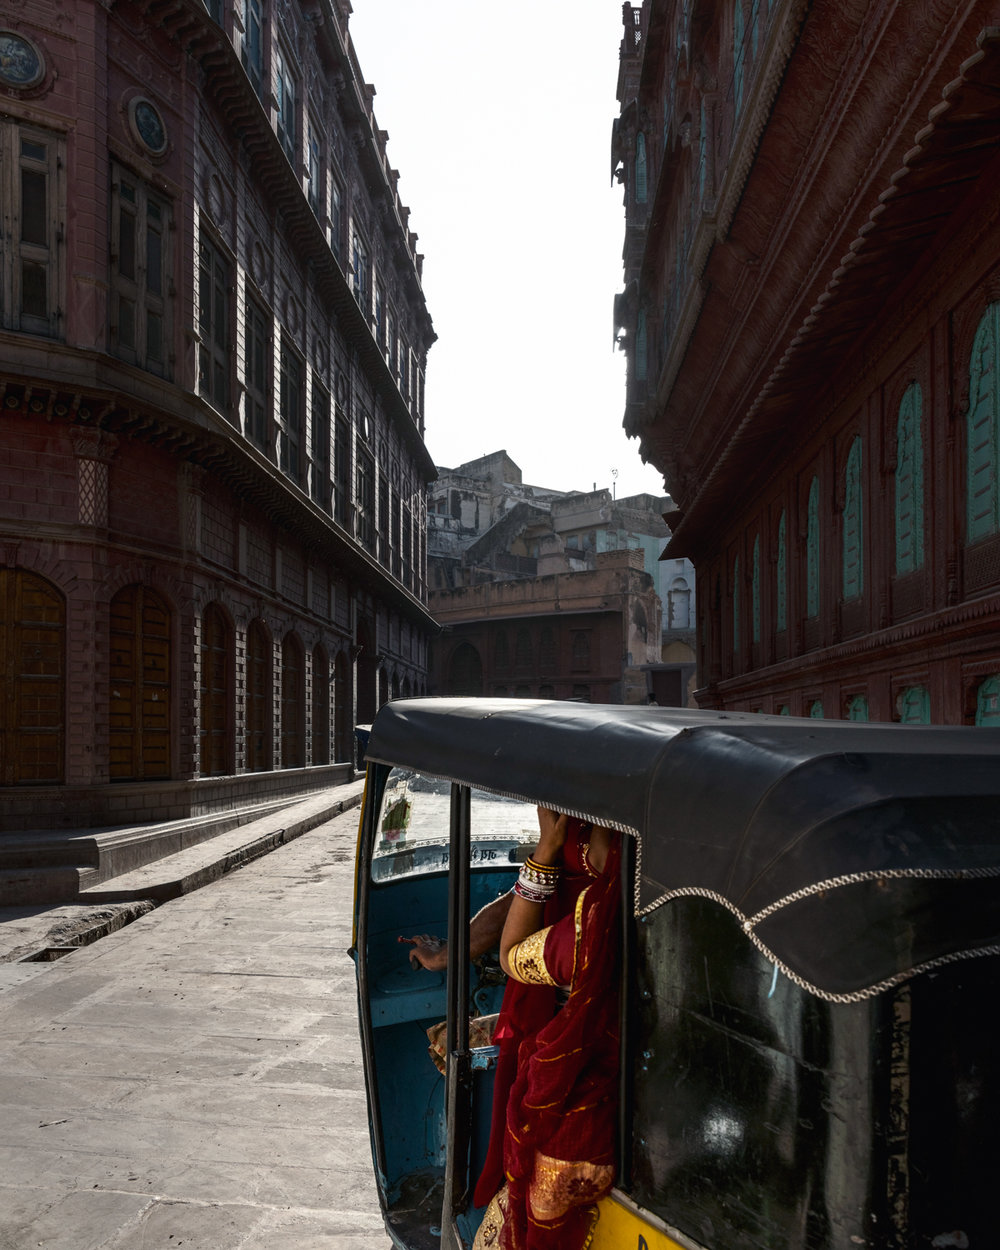 Women ride in a tuktuk through the streets of Bikaneer.